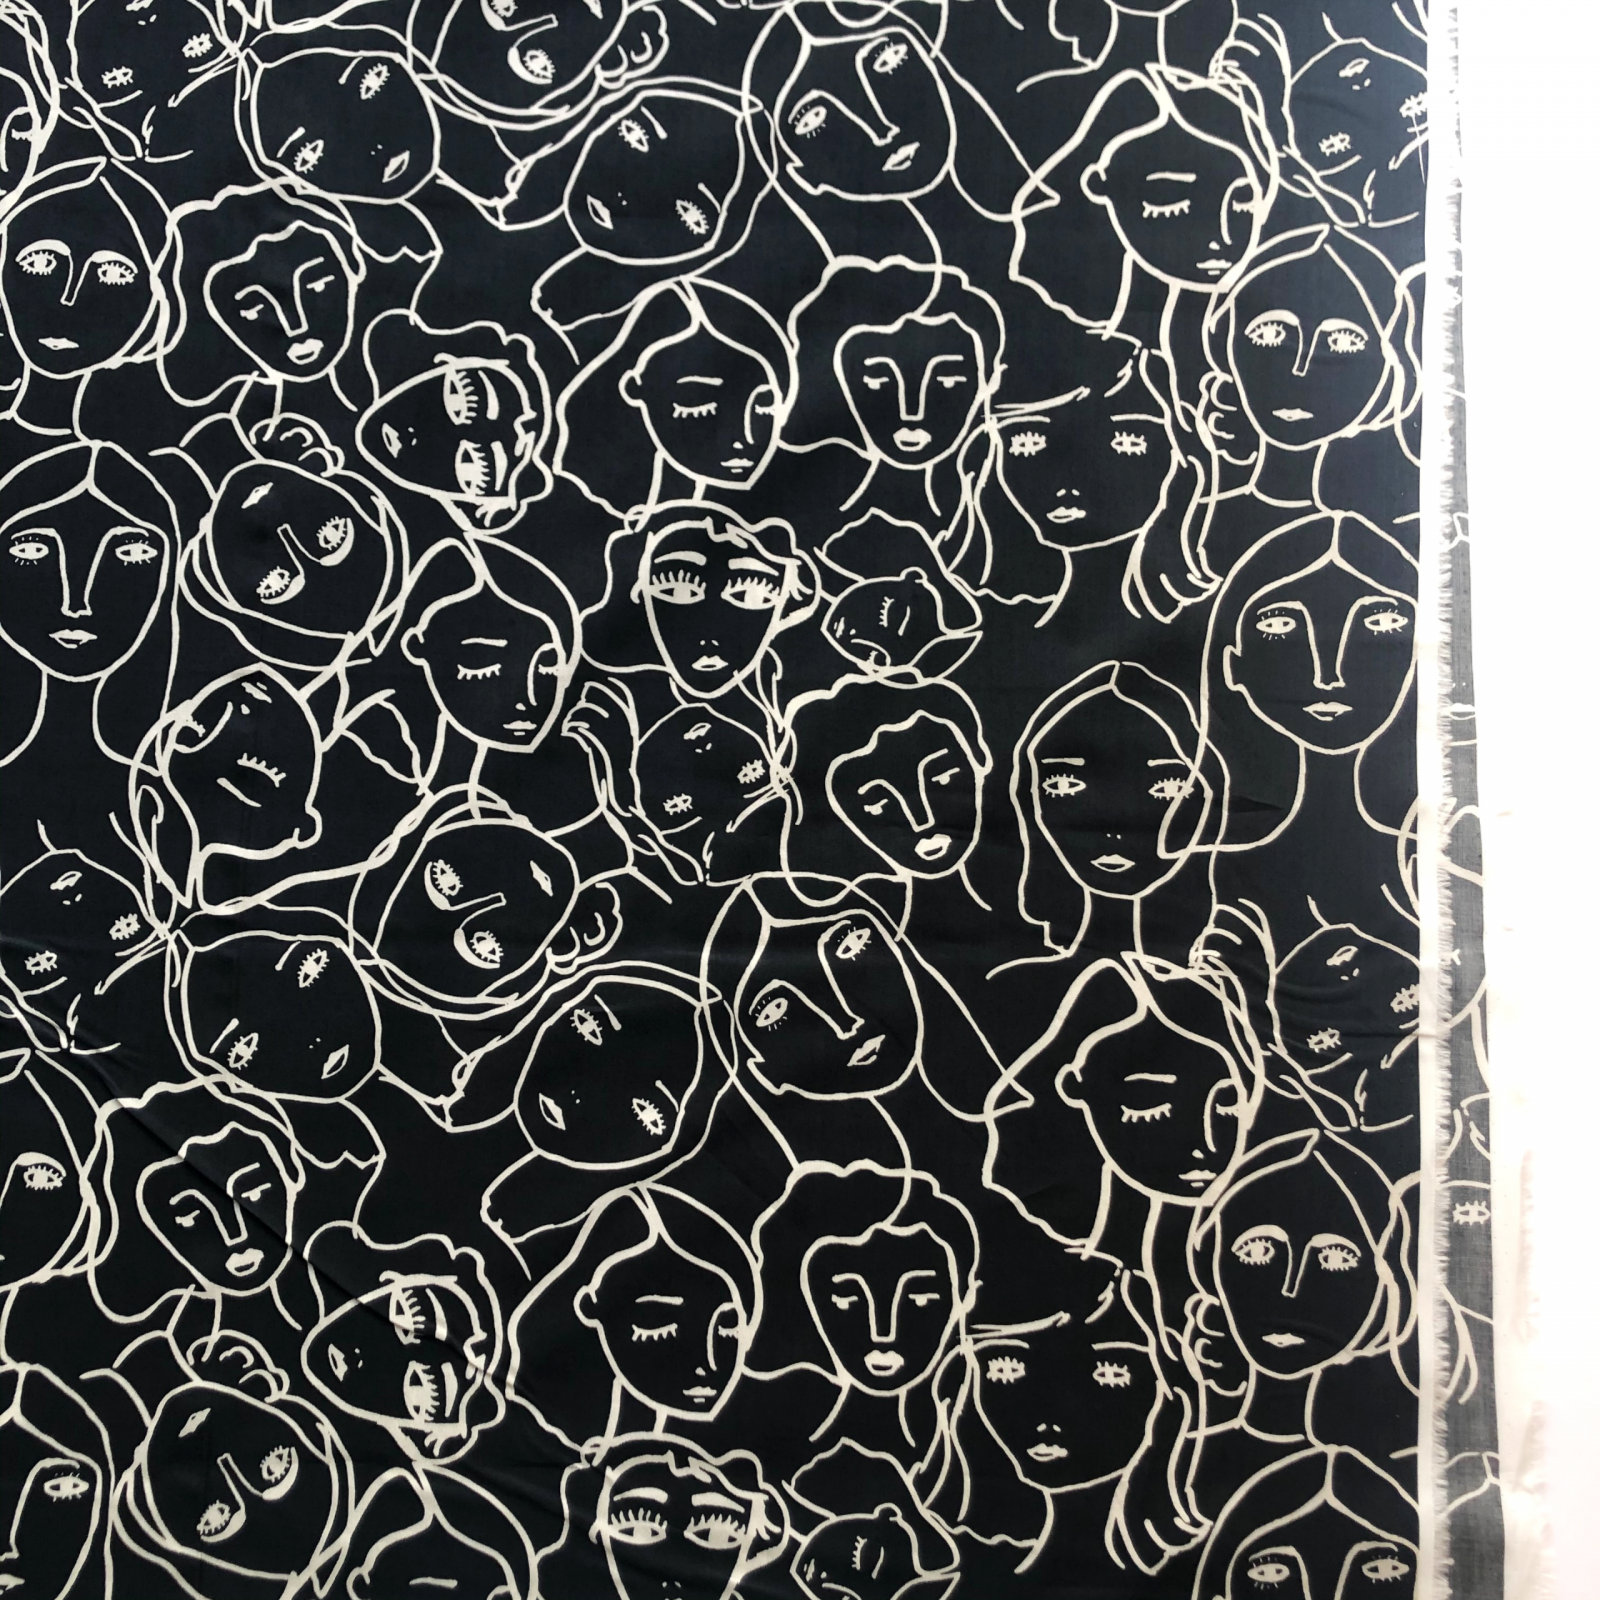 Lady McElroy Crowded Faces Cotton Lawn  - Black 55